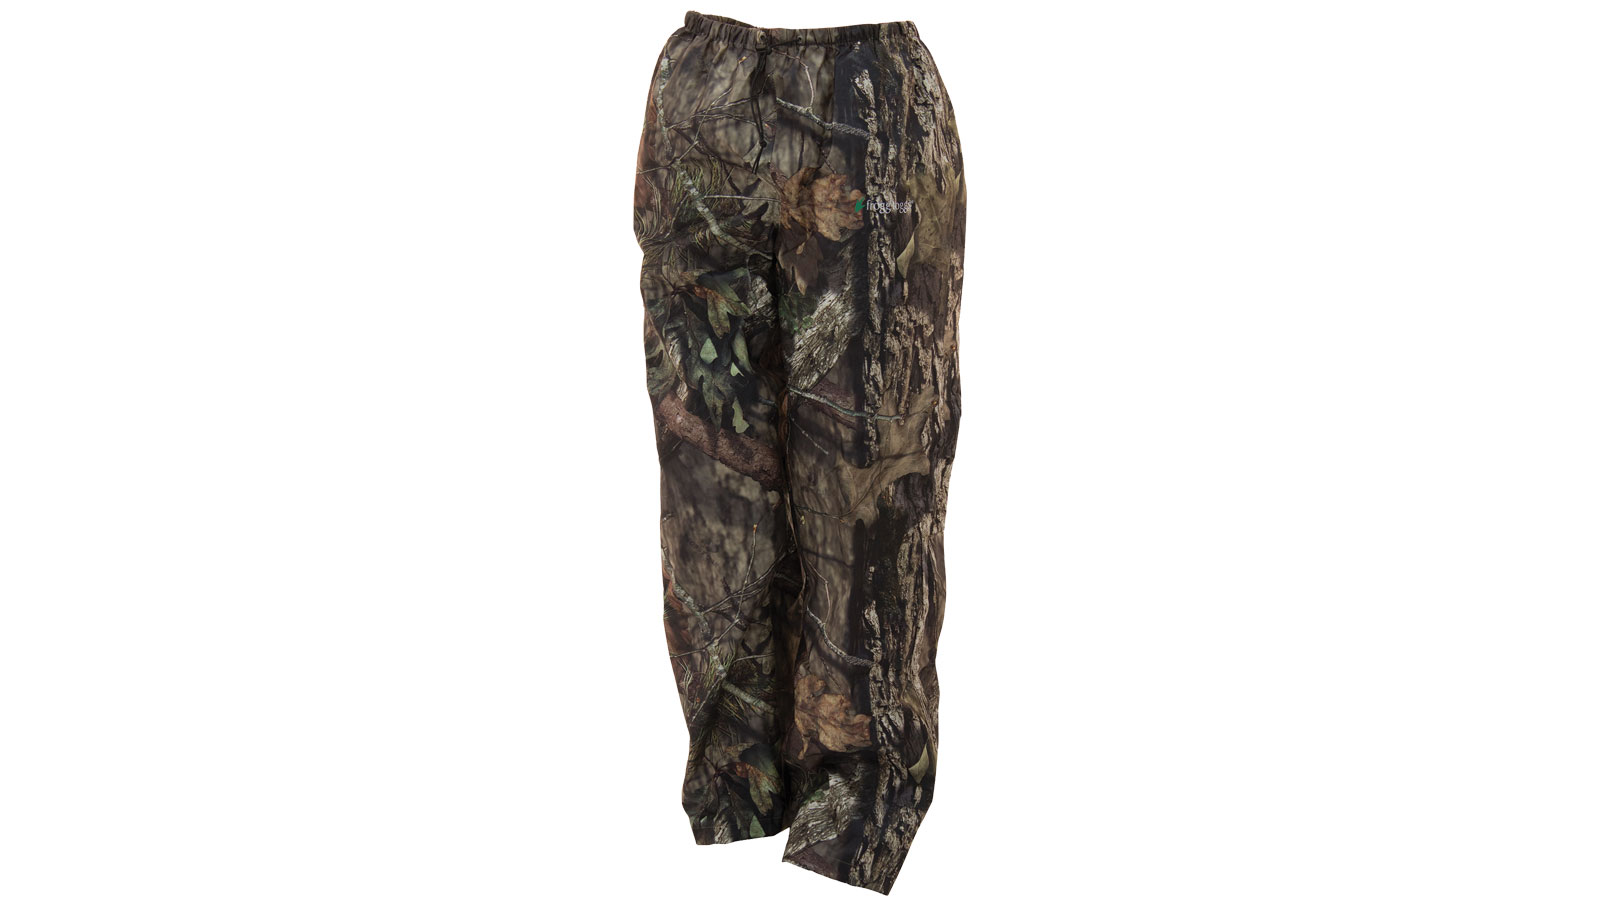 Frogg Toggs Pro Action Camo Pants Mossy Oak Break Up Country, 2X-Large